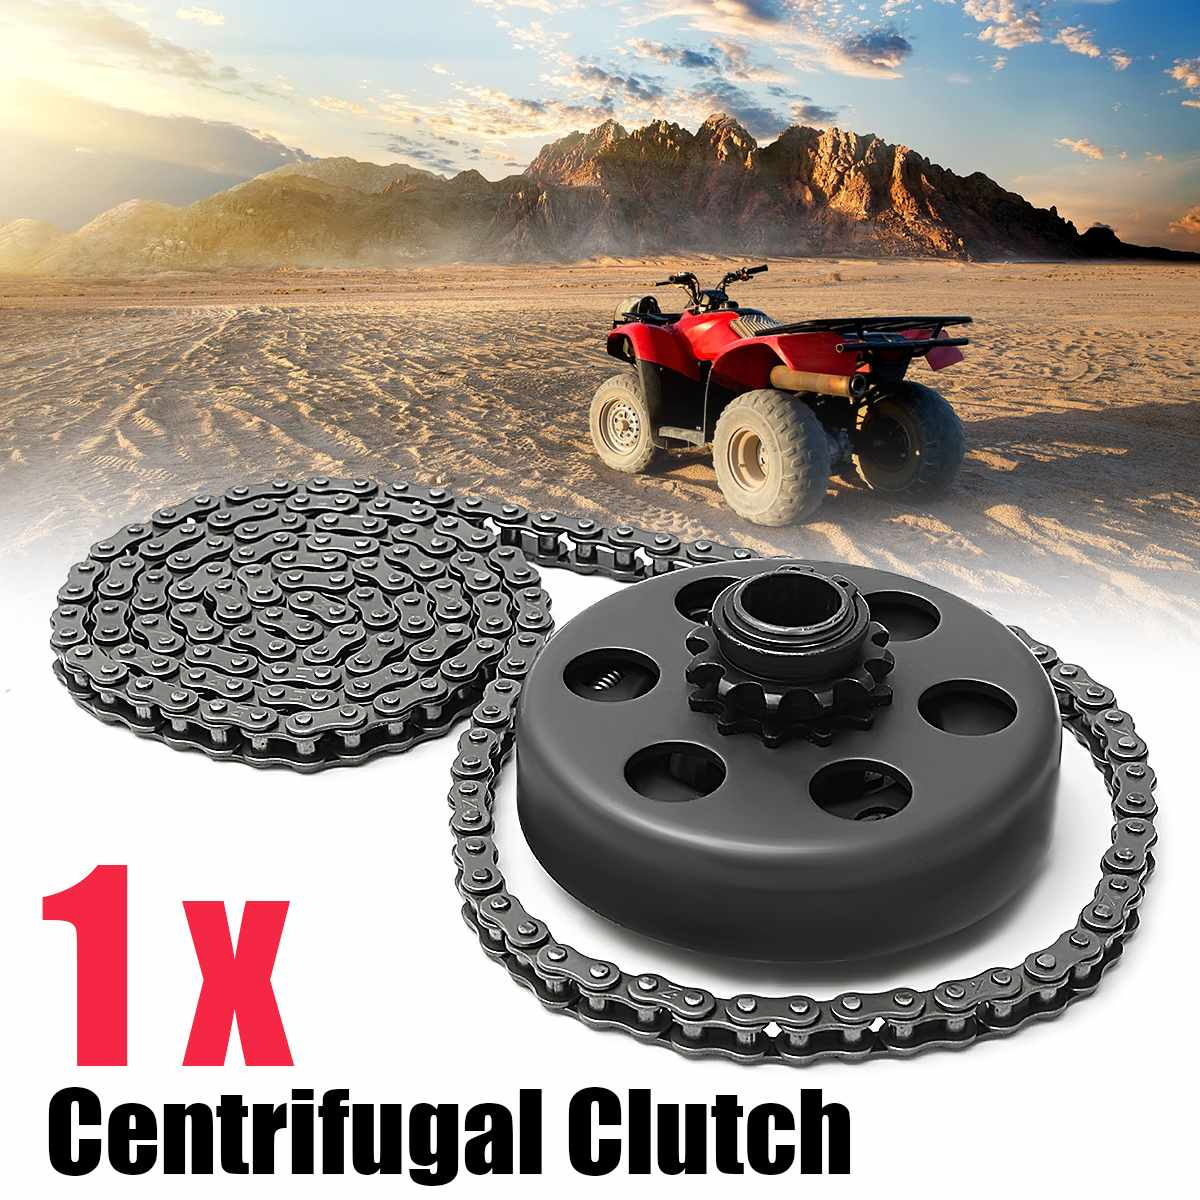 For Minibike Go Kart 3/4 Bore Centrifugal Automatic Clutch 12 Tooth 35 Chain Screw SetsFor Minibike Go Kart 3/4 Bore Centrifugal Automatic Clutch 12 Tooth 35 Chain Screw Sets